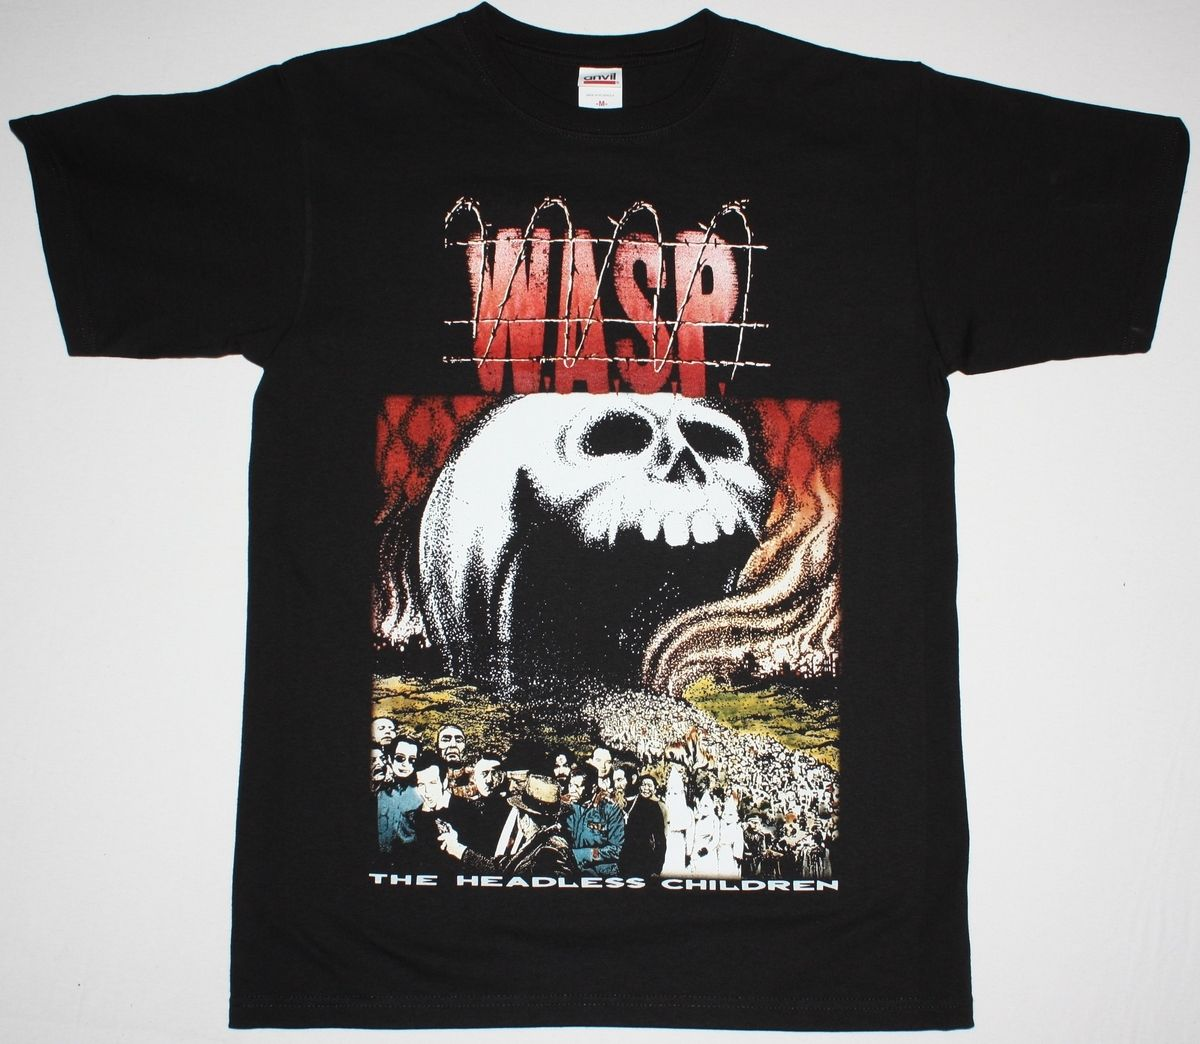 W.A.S.P. THE HEADLESS CHILDREN'89 WASP HEAVY METAL BAND <font><b>RATT</b></font> NEW BLACK <font><b>T</b></font>-<font><b>SHIRT</b></font> Sleeve Tee <font><b>Shirt</b></font> Homme <font><b>T</b></font> <font><b>Shirt</b></font> image